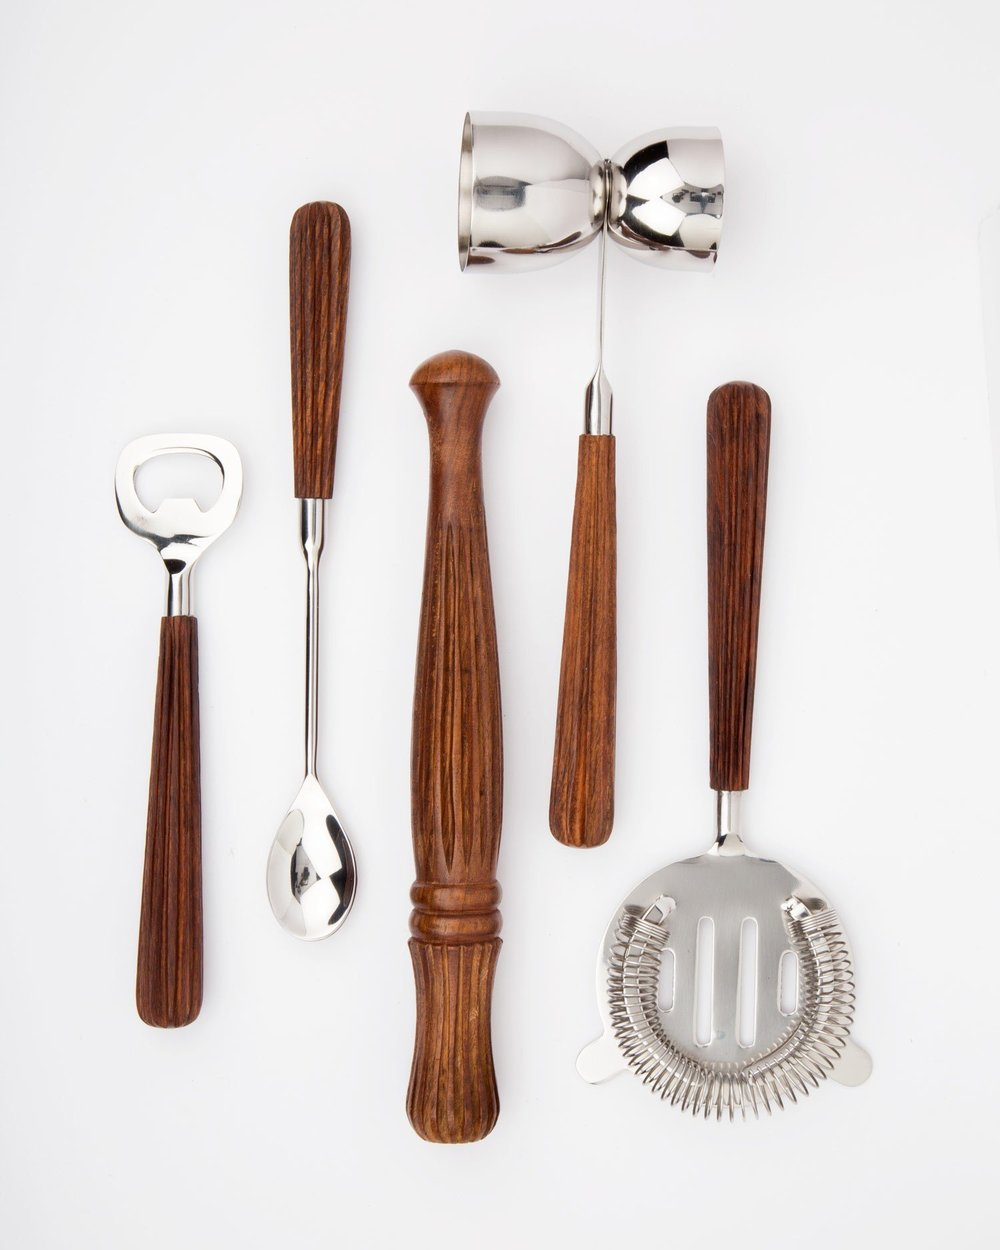 Hand Carved Craft Bar Tools - Ten Thousand Villages | $70 | Use 'STYLEMEFAIR25' for 25% off